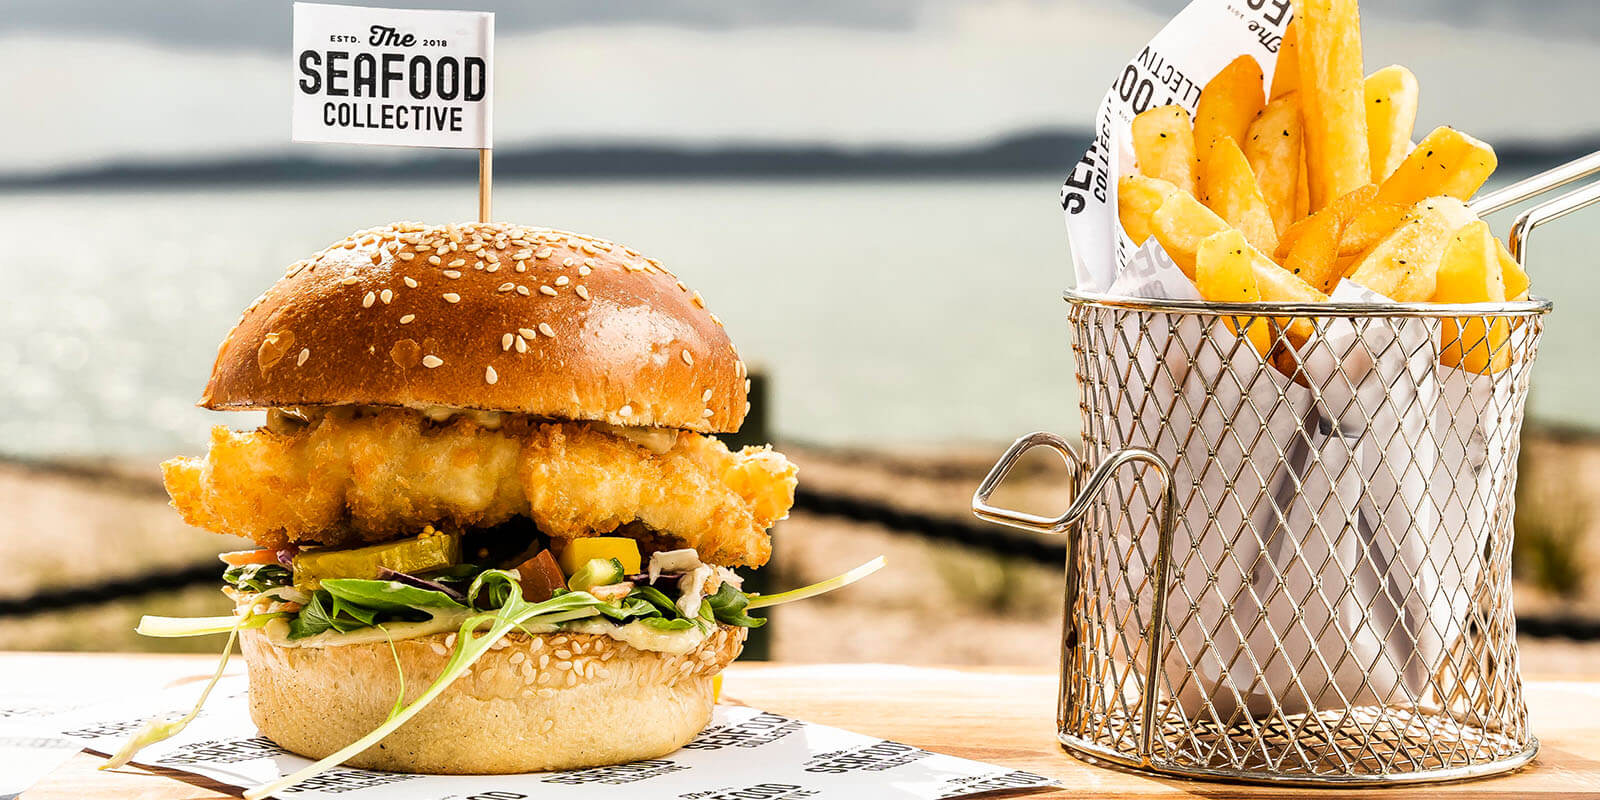 Where to find the best Fish Burgers!